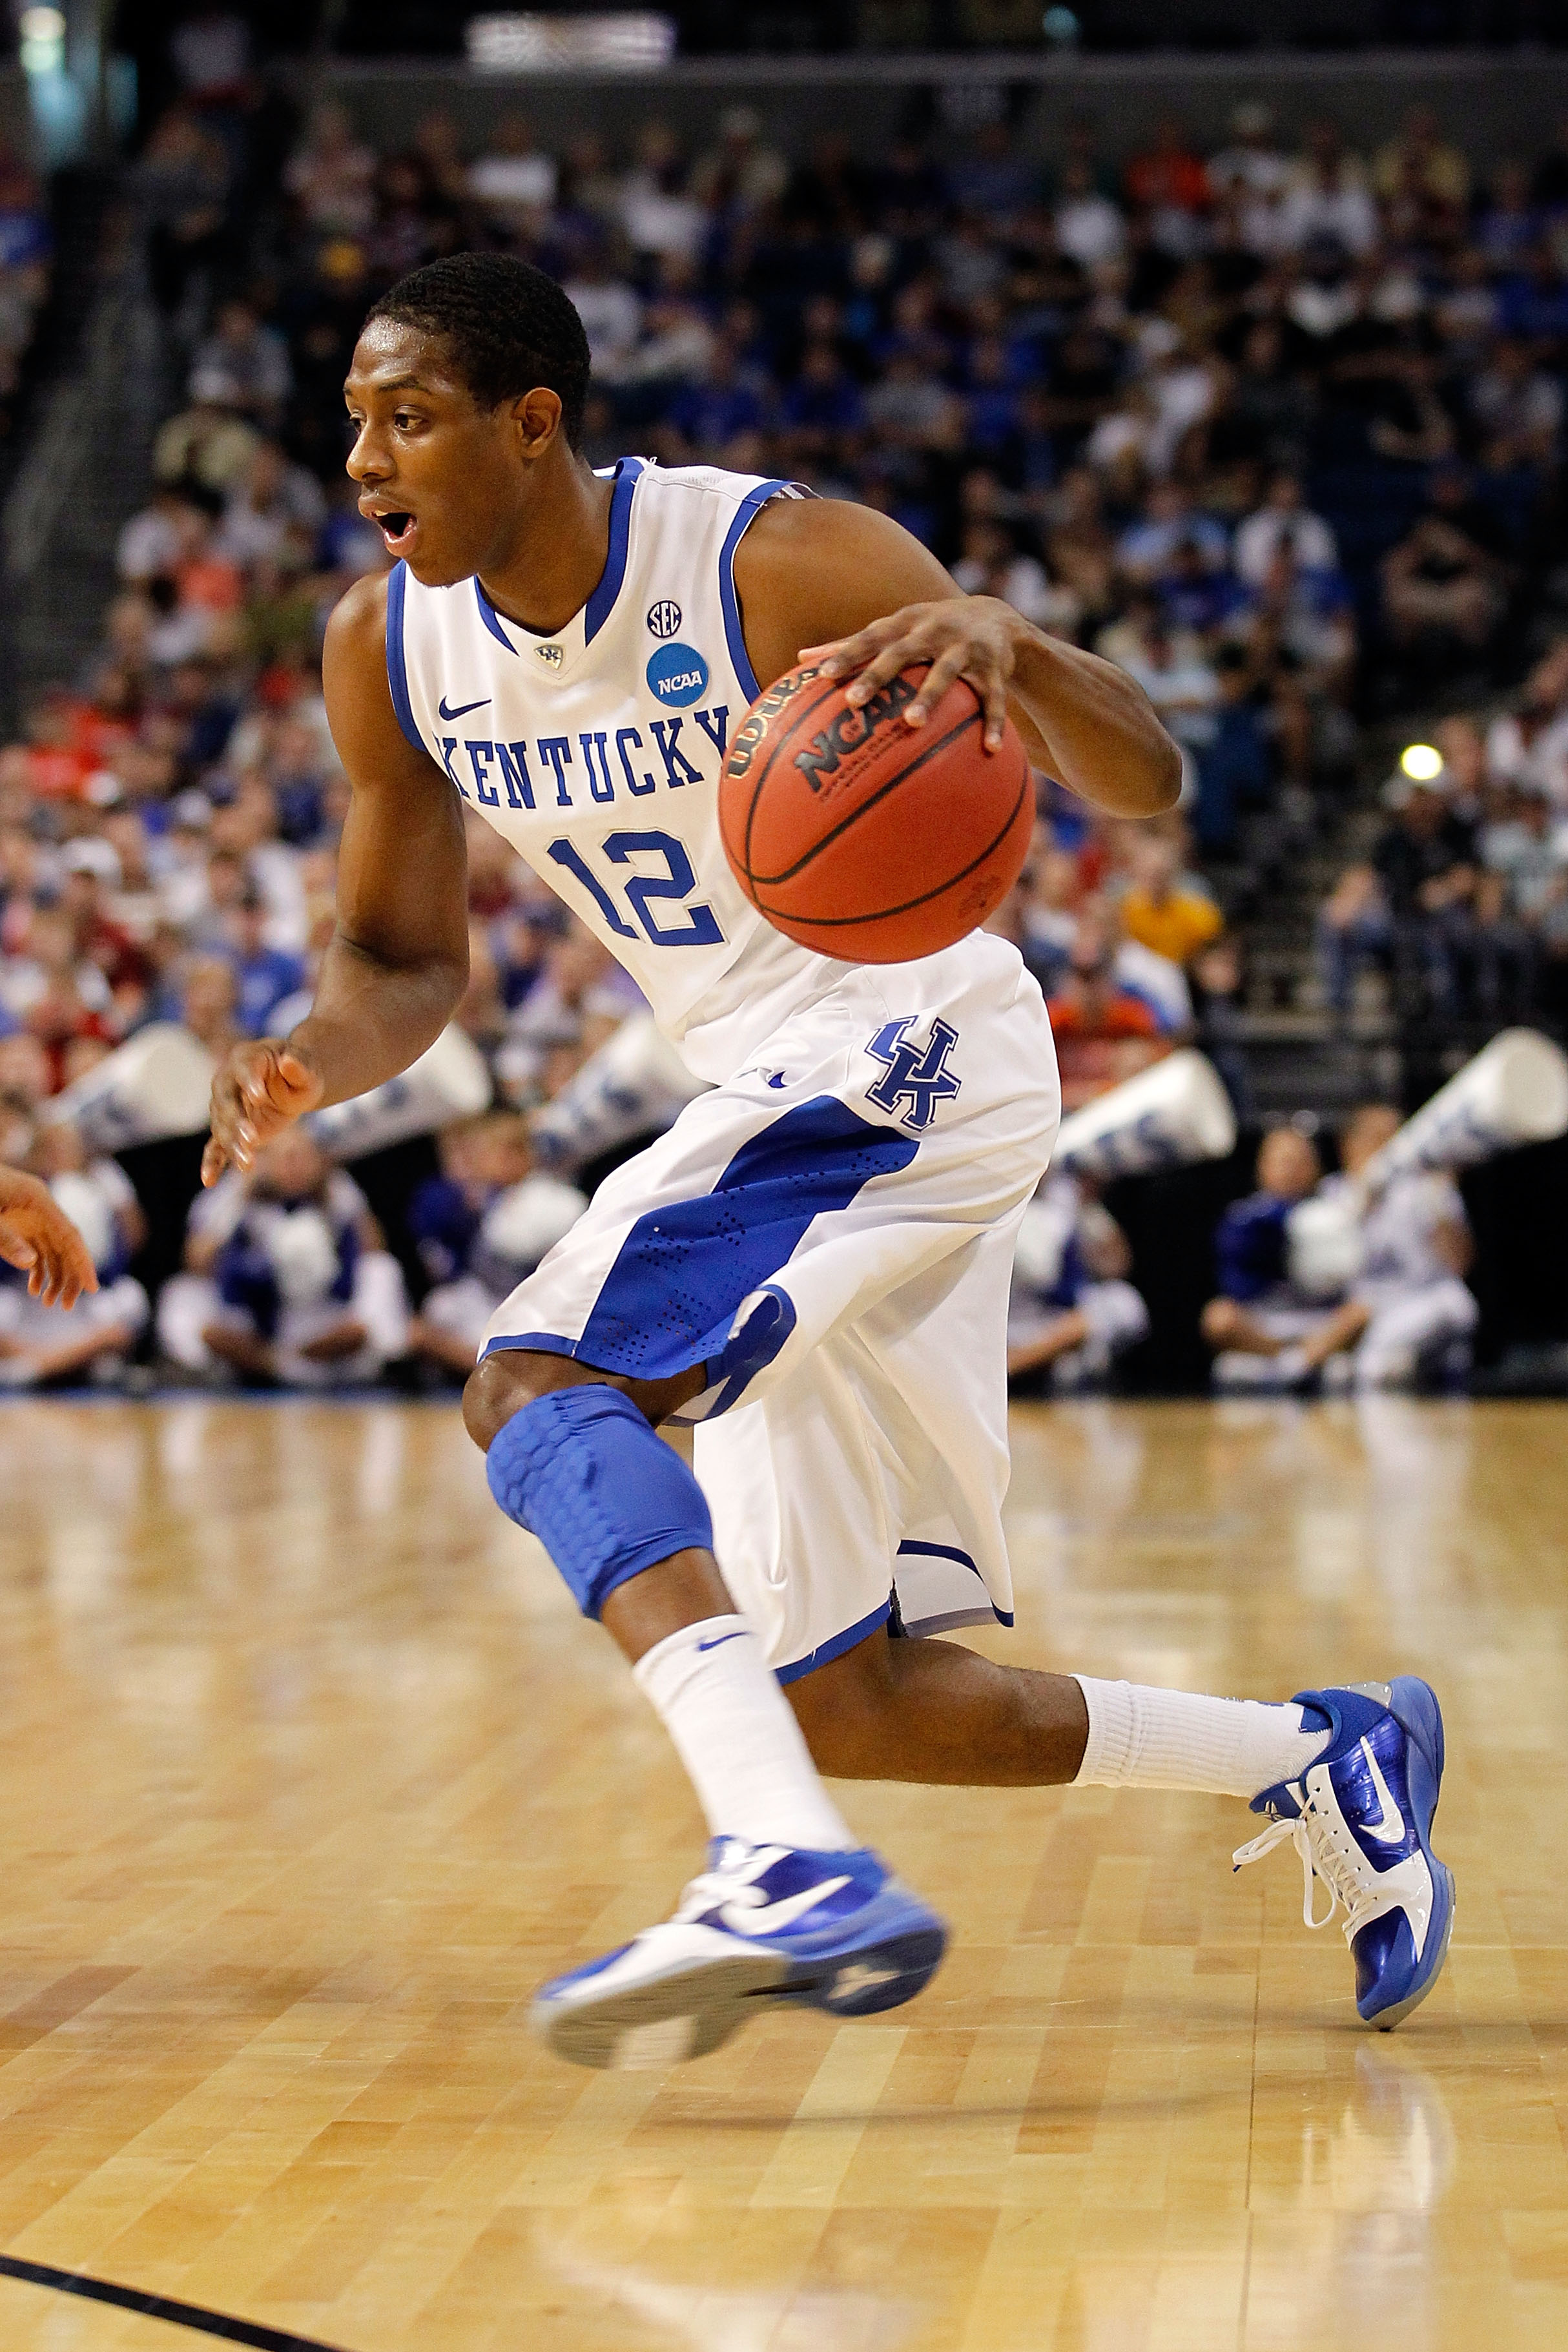 TAMPA, FL - MARCH 19:  Brandon Knight #12 of the Kentucky Wildcats drives against the West Virginia Mountaineers during the third round of the 2011 NCAA men's basketball tournament at St. Pete Times Forum on March 19, 2011 in Tampa, Florida.  (Photo by J.